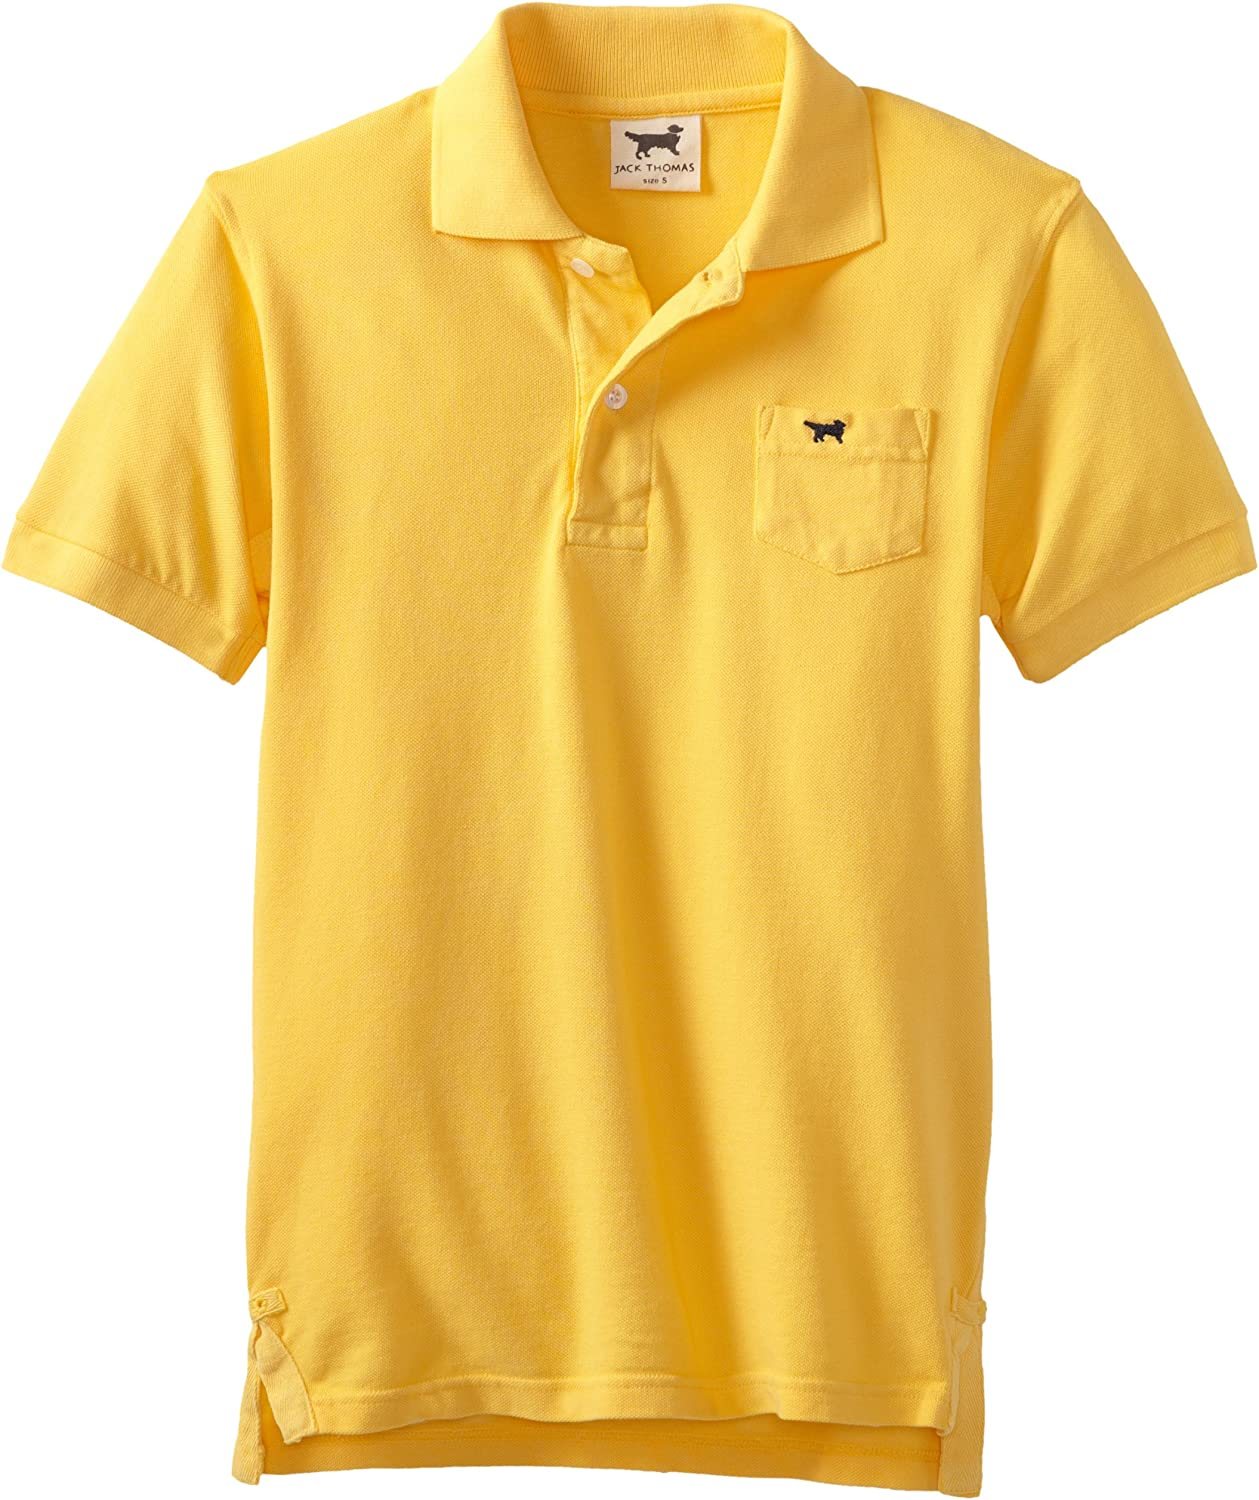 Wes and Willy Big Boys' Short Sleeve Polo